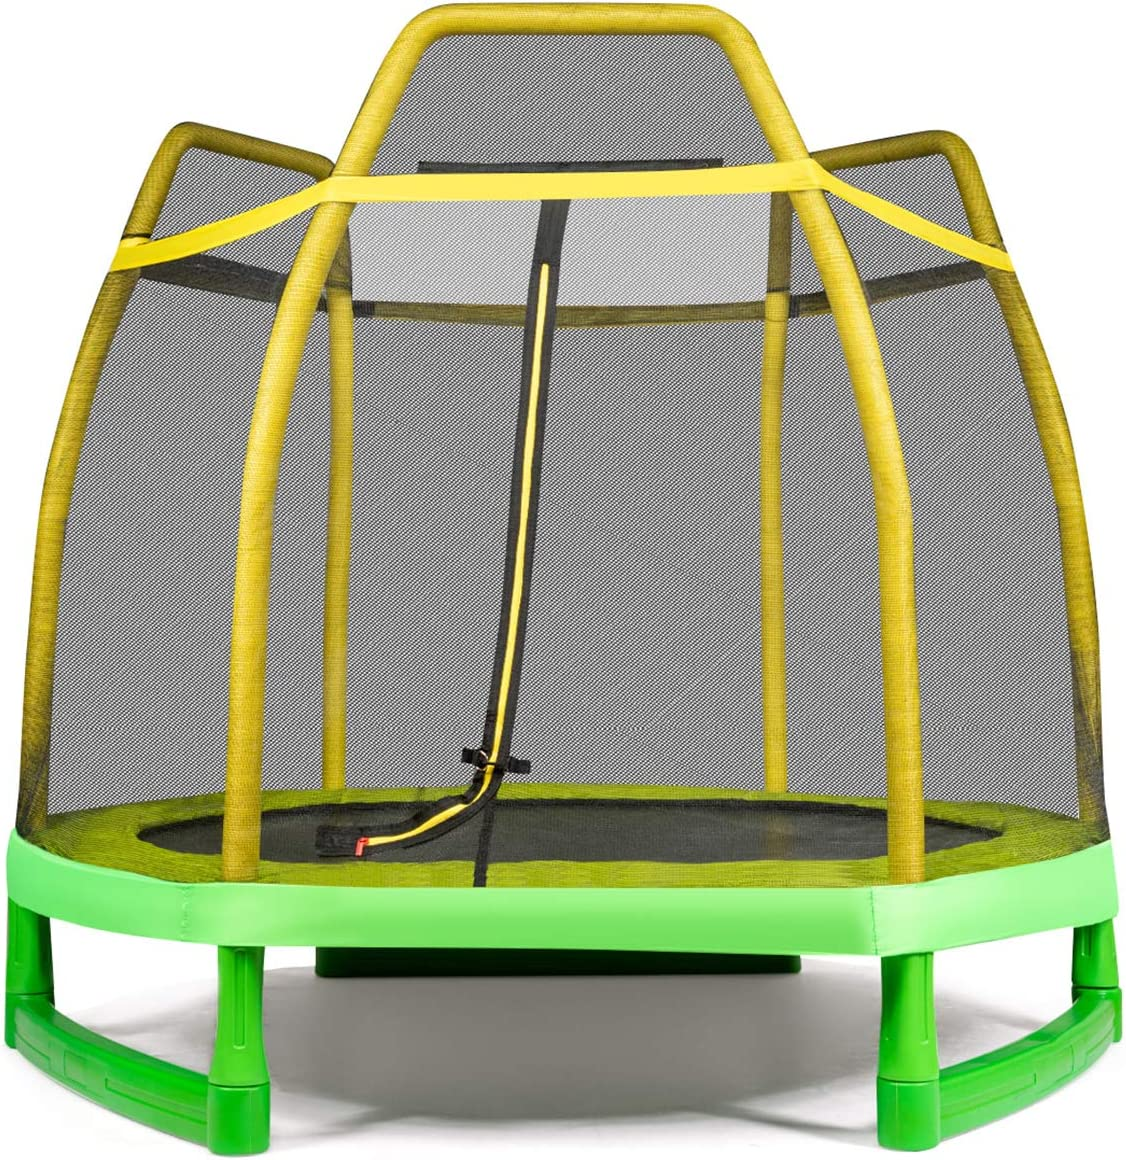 Jumping Trampoline with Safety Enclosure Net /& Spring Pad for Outdoor//Indoor Built-in Zipper Heavy Duty Trampoline for Kids Family GYMAX 7ft Kids Trampoline